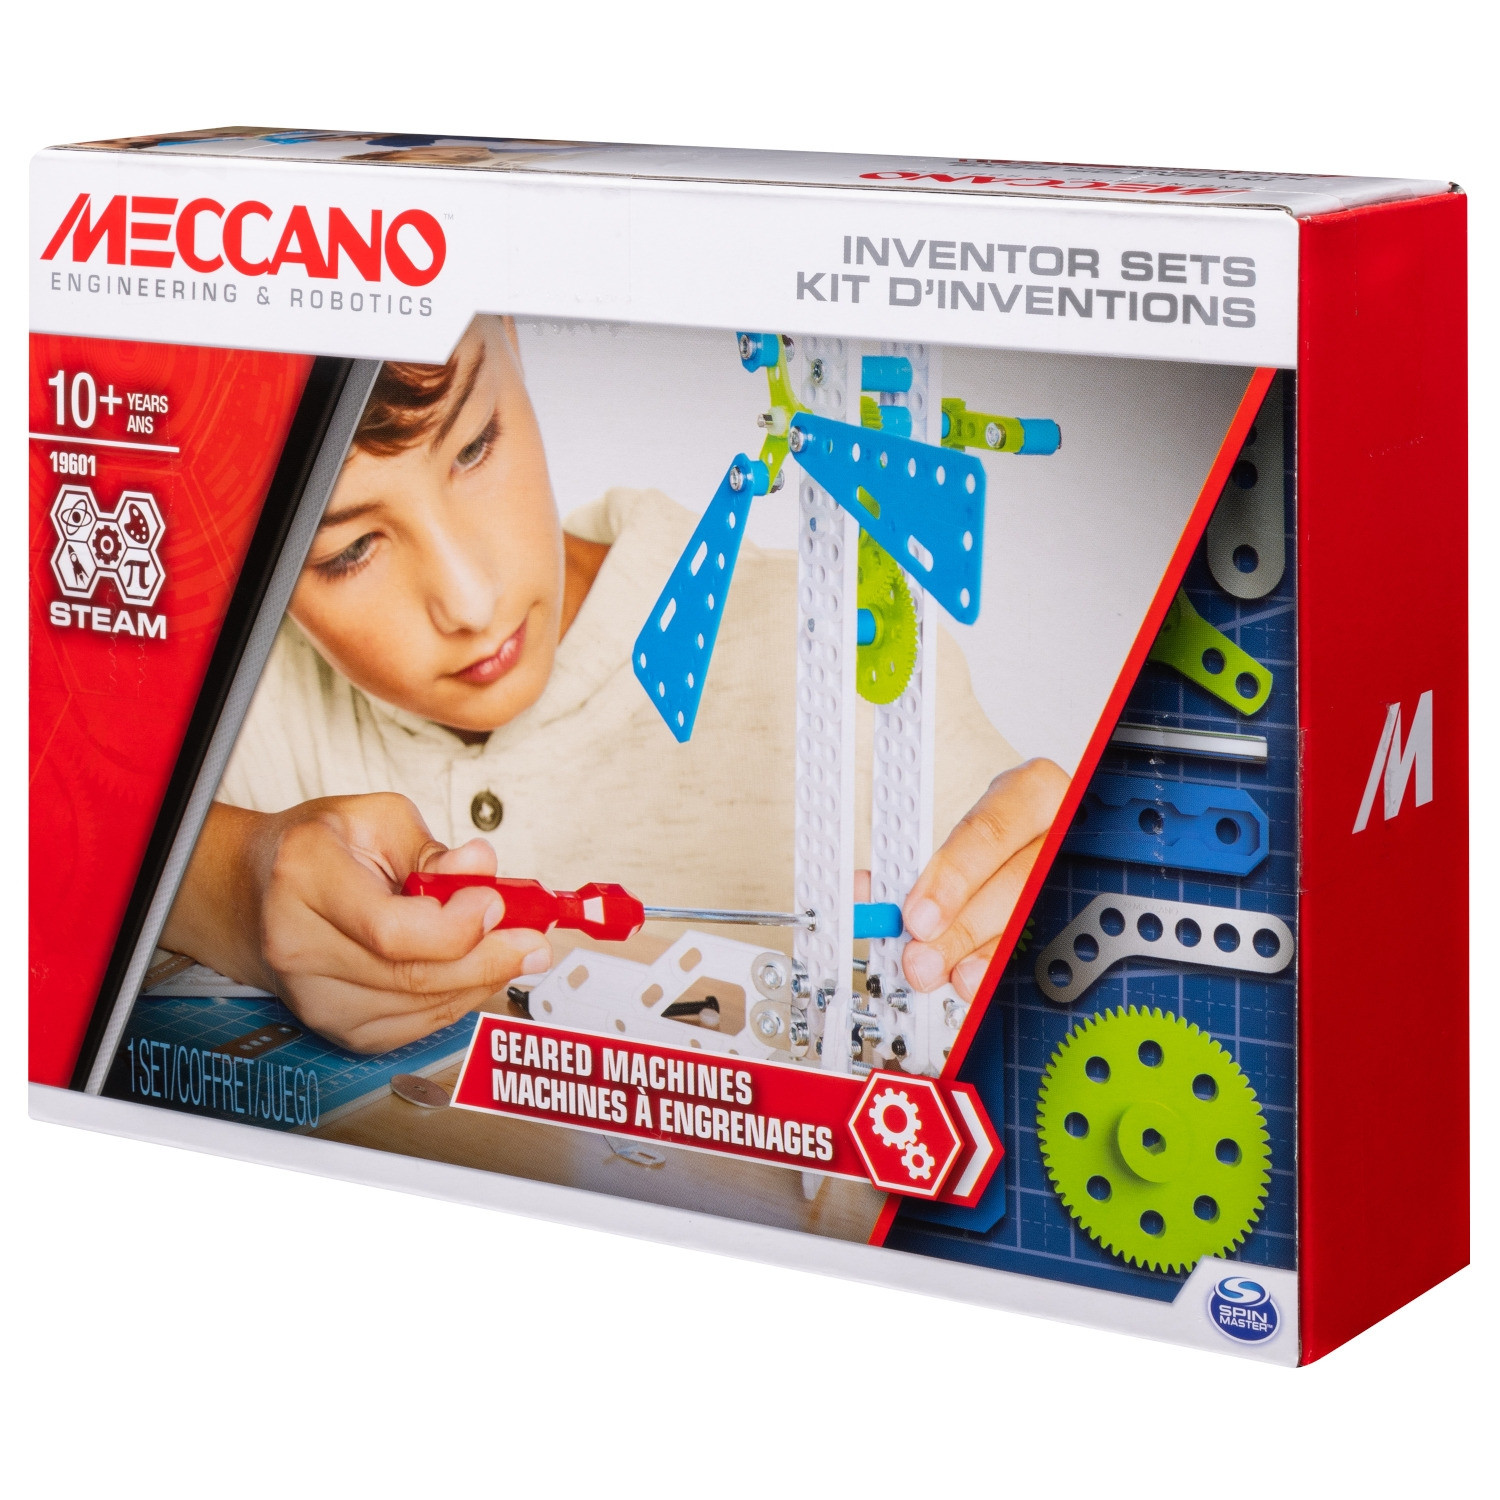 Meccano KIT D'INVENTIONS – ENGRENAGES Kits d'Inventions